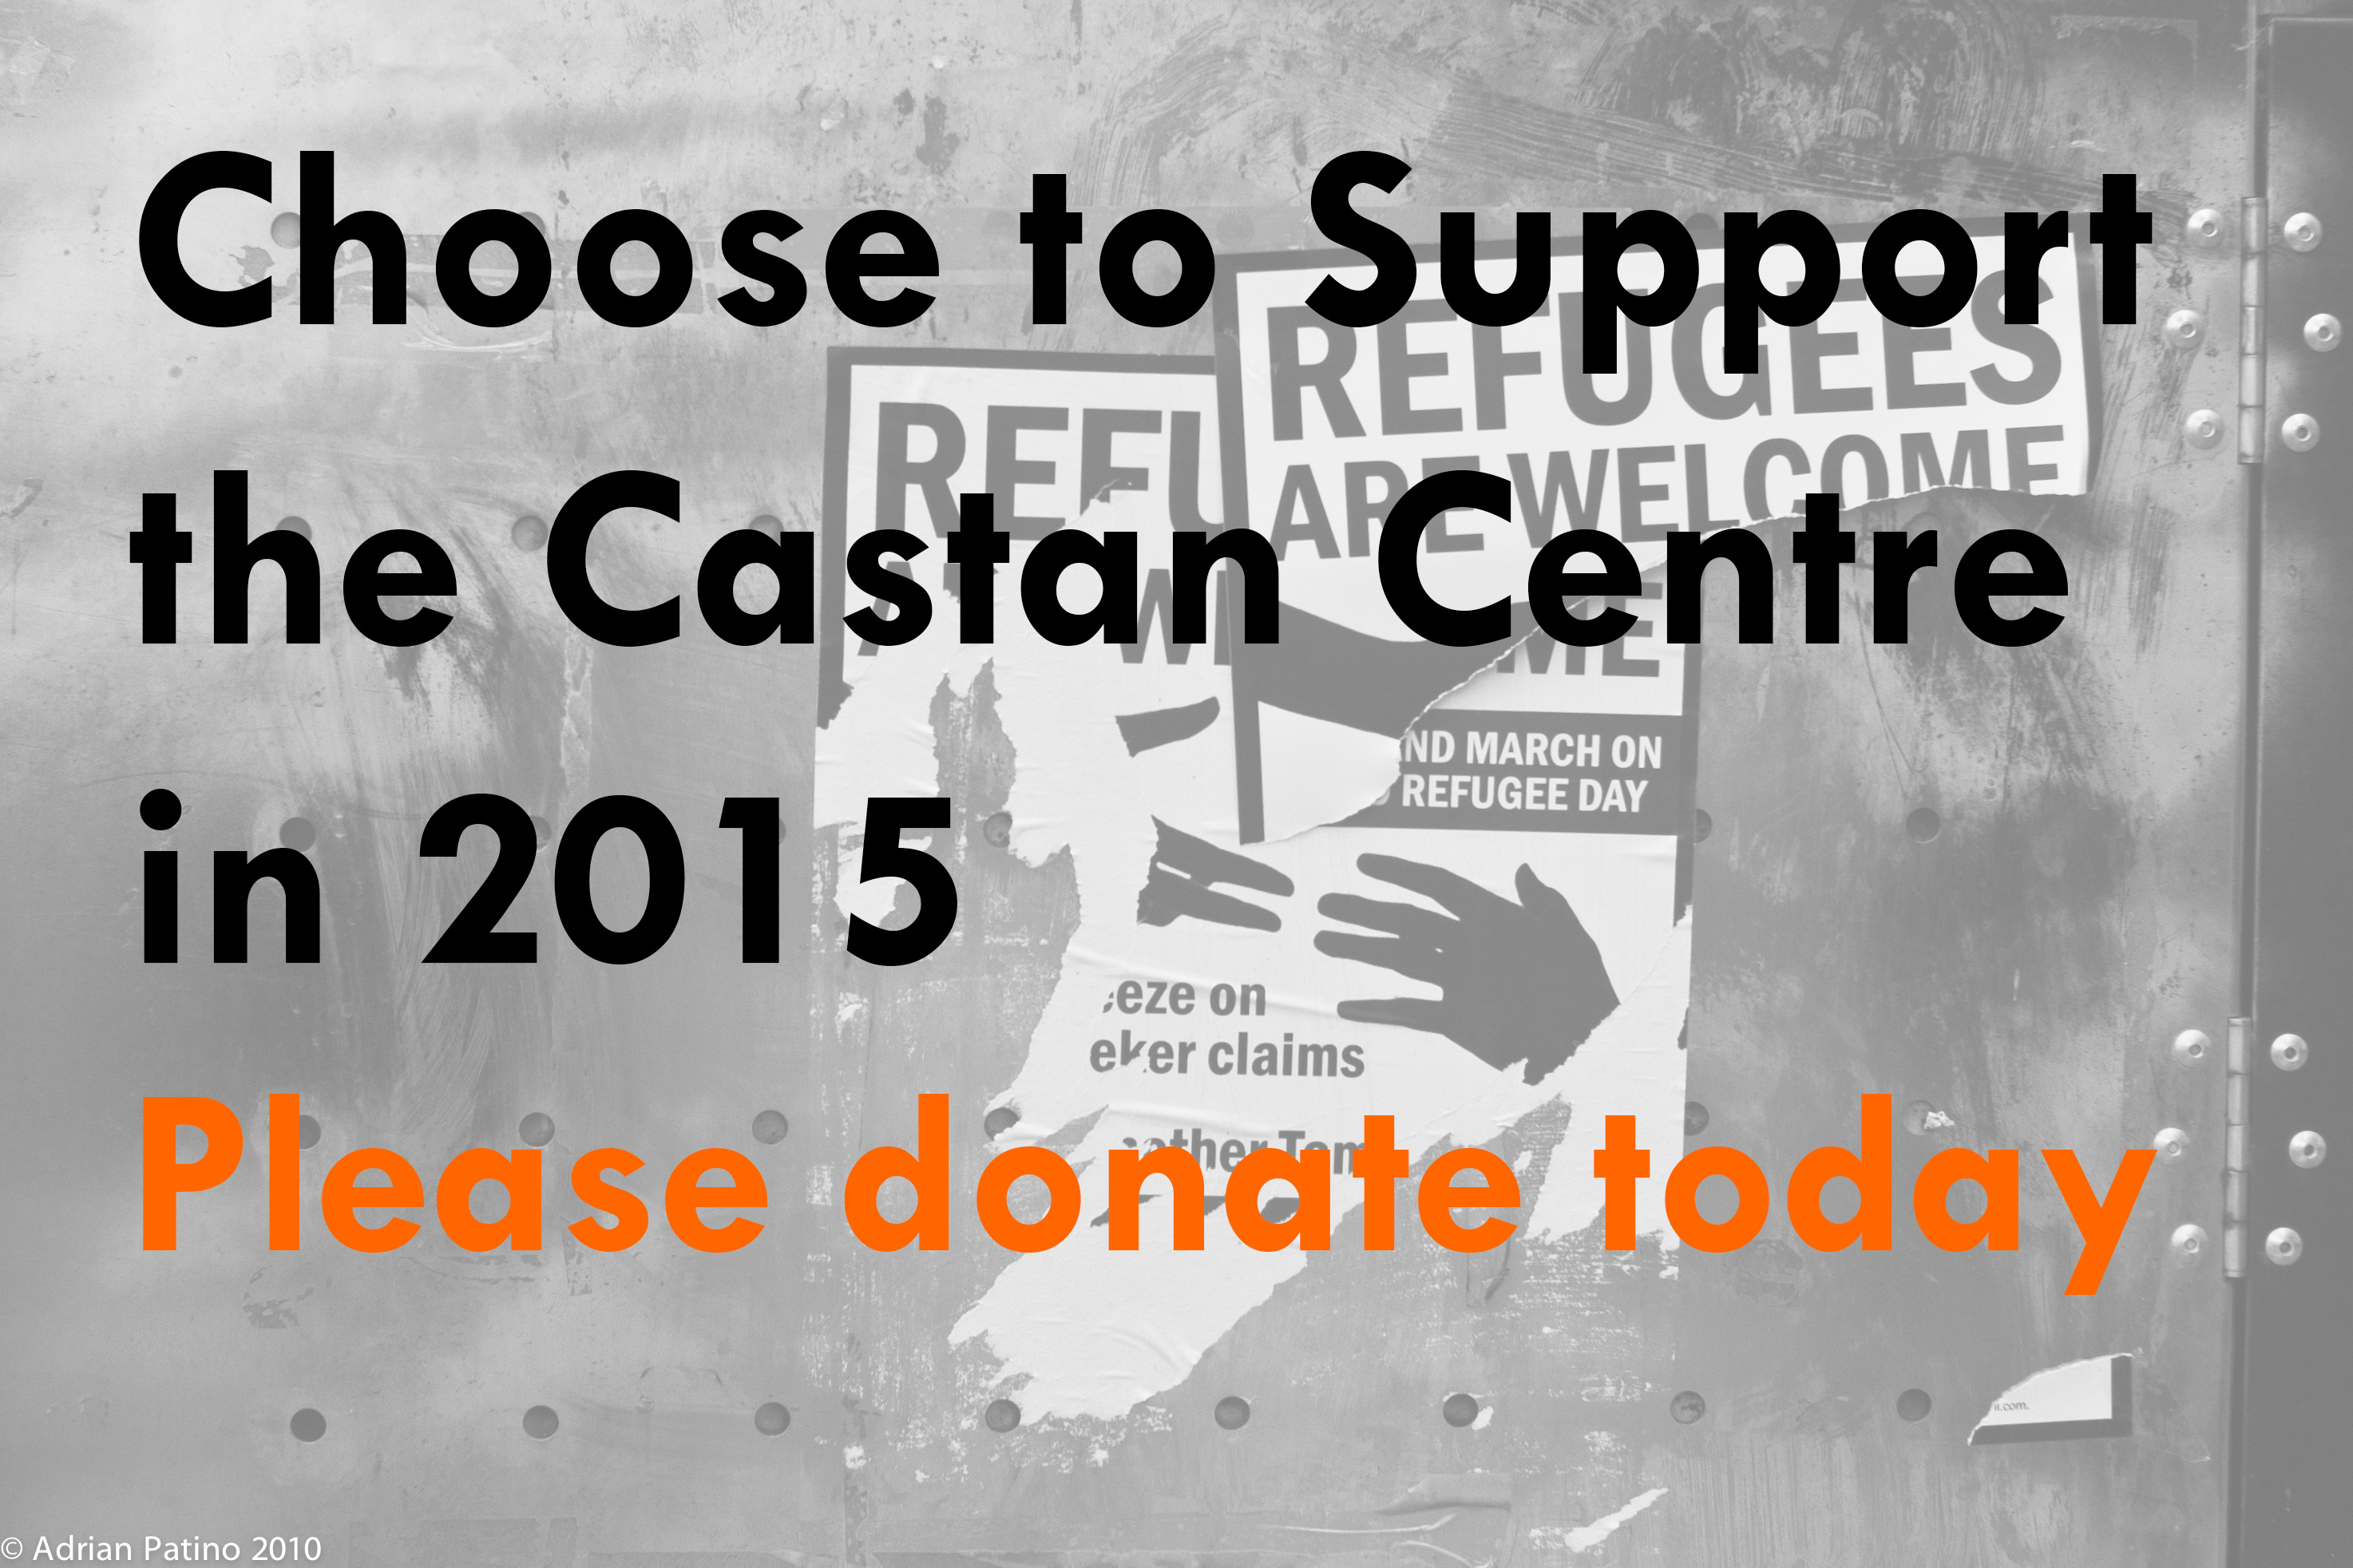 Donate to the Castan Centre